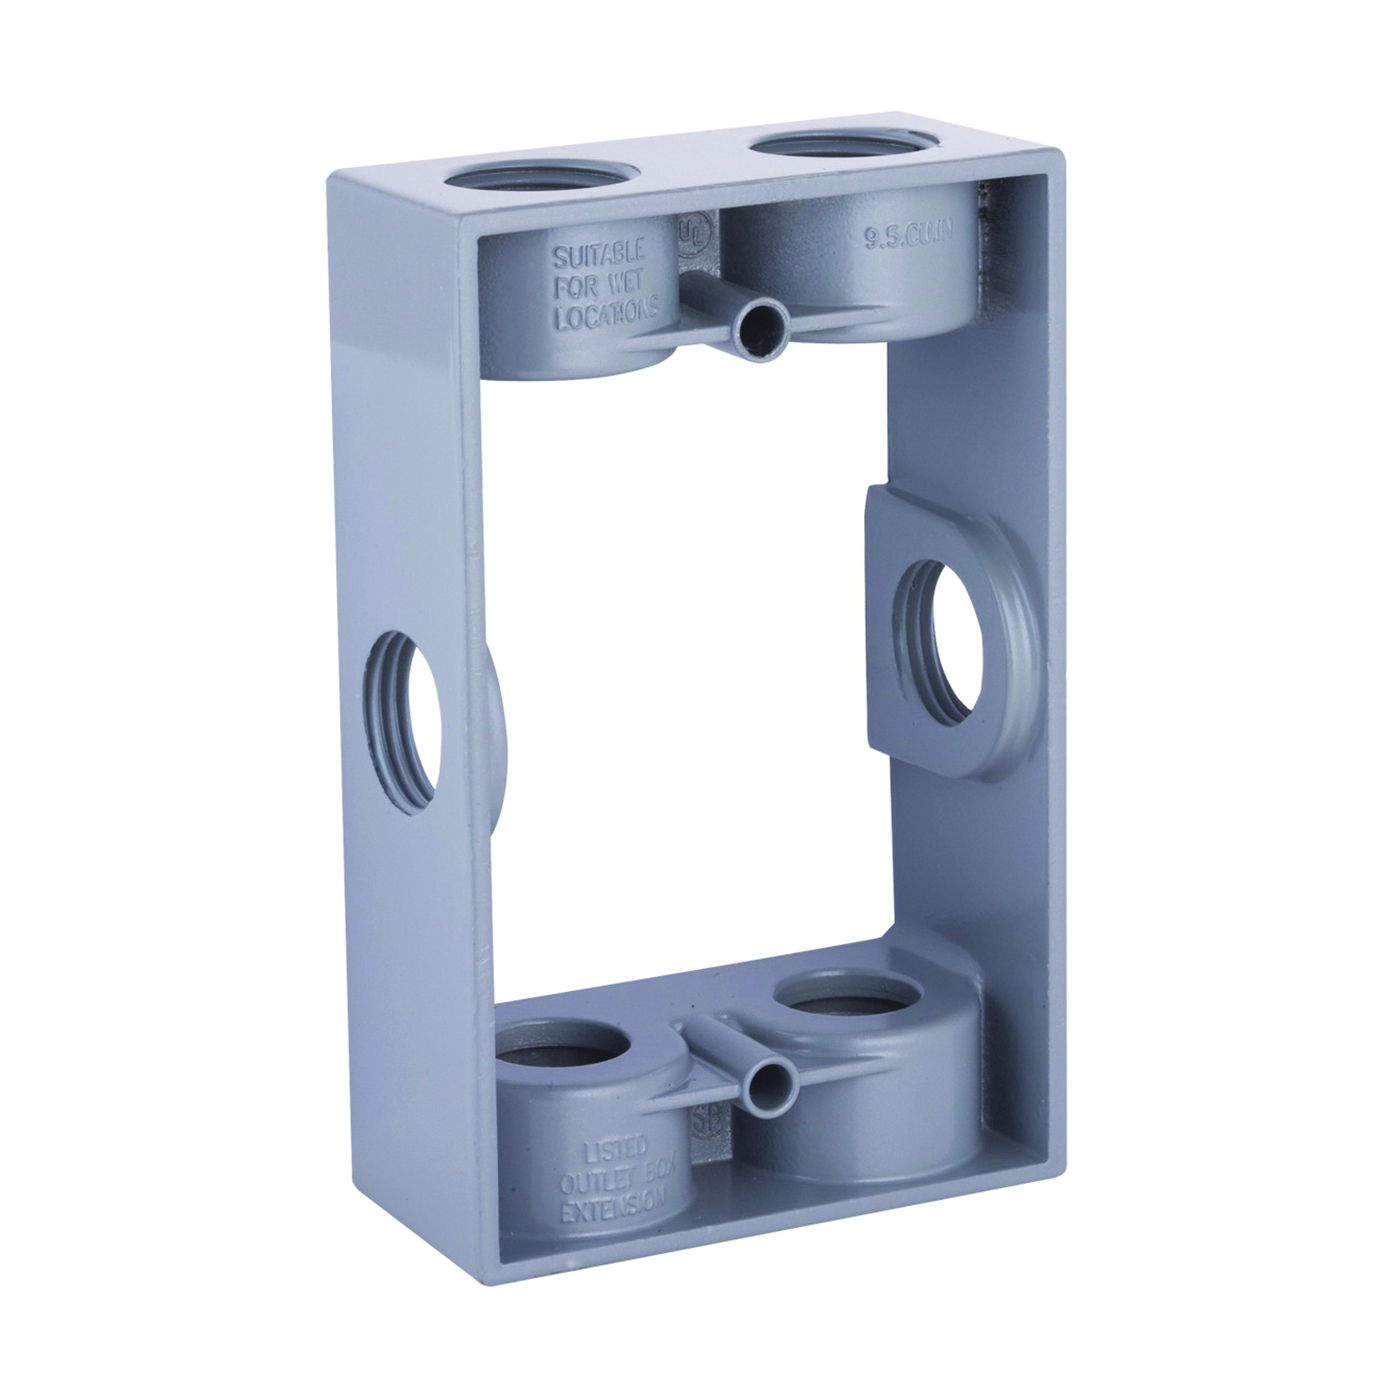 Picture of HUBBELL 5400-5 Extension Adapter with Lug, 5-1/4 in L, 3-1/2 in W, 1-Gang, 6-Knockout, Die-Cast Aluminum, Gray